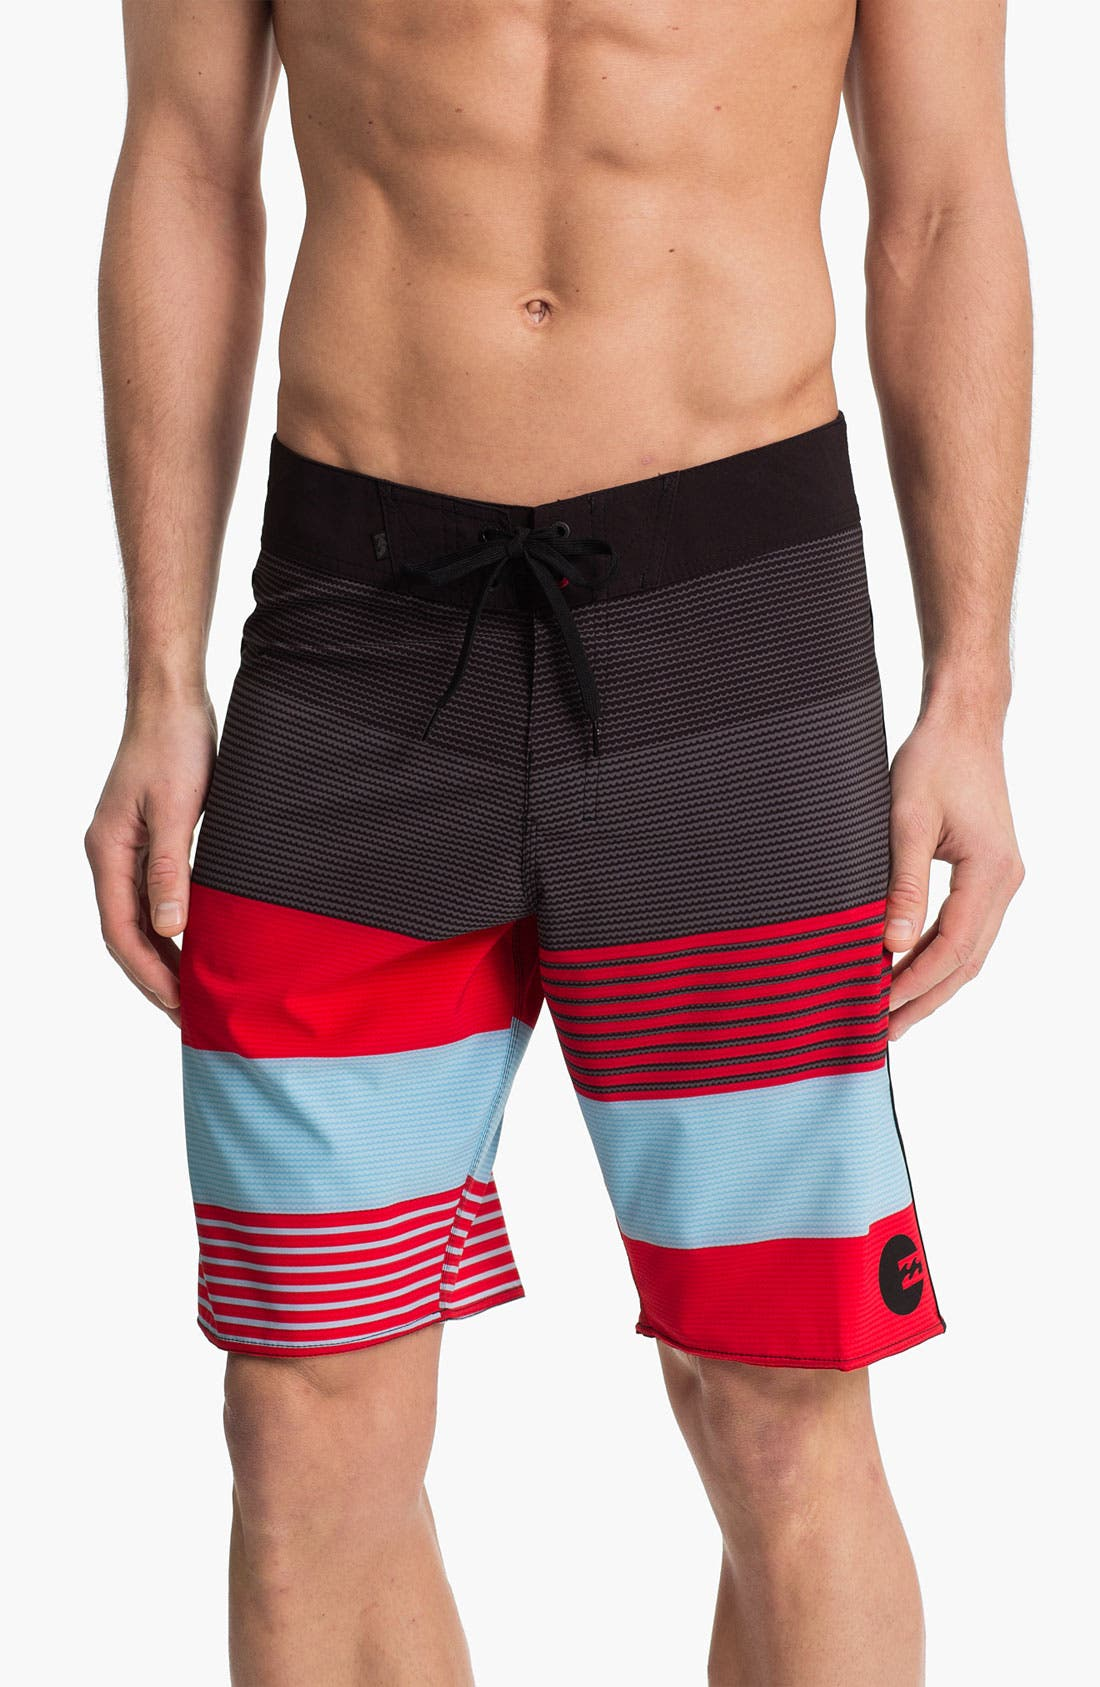 Alternate Image 1 Selected - Billabong 'Komplete' Board Shorts